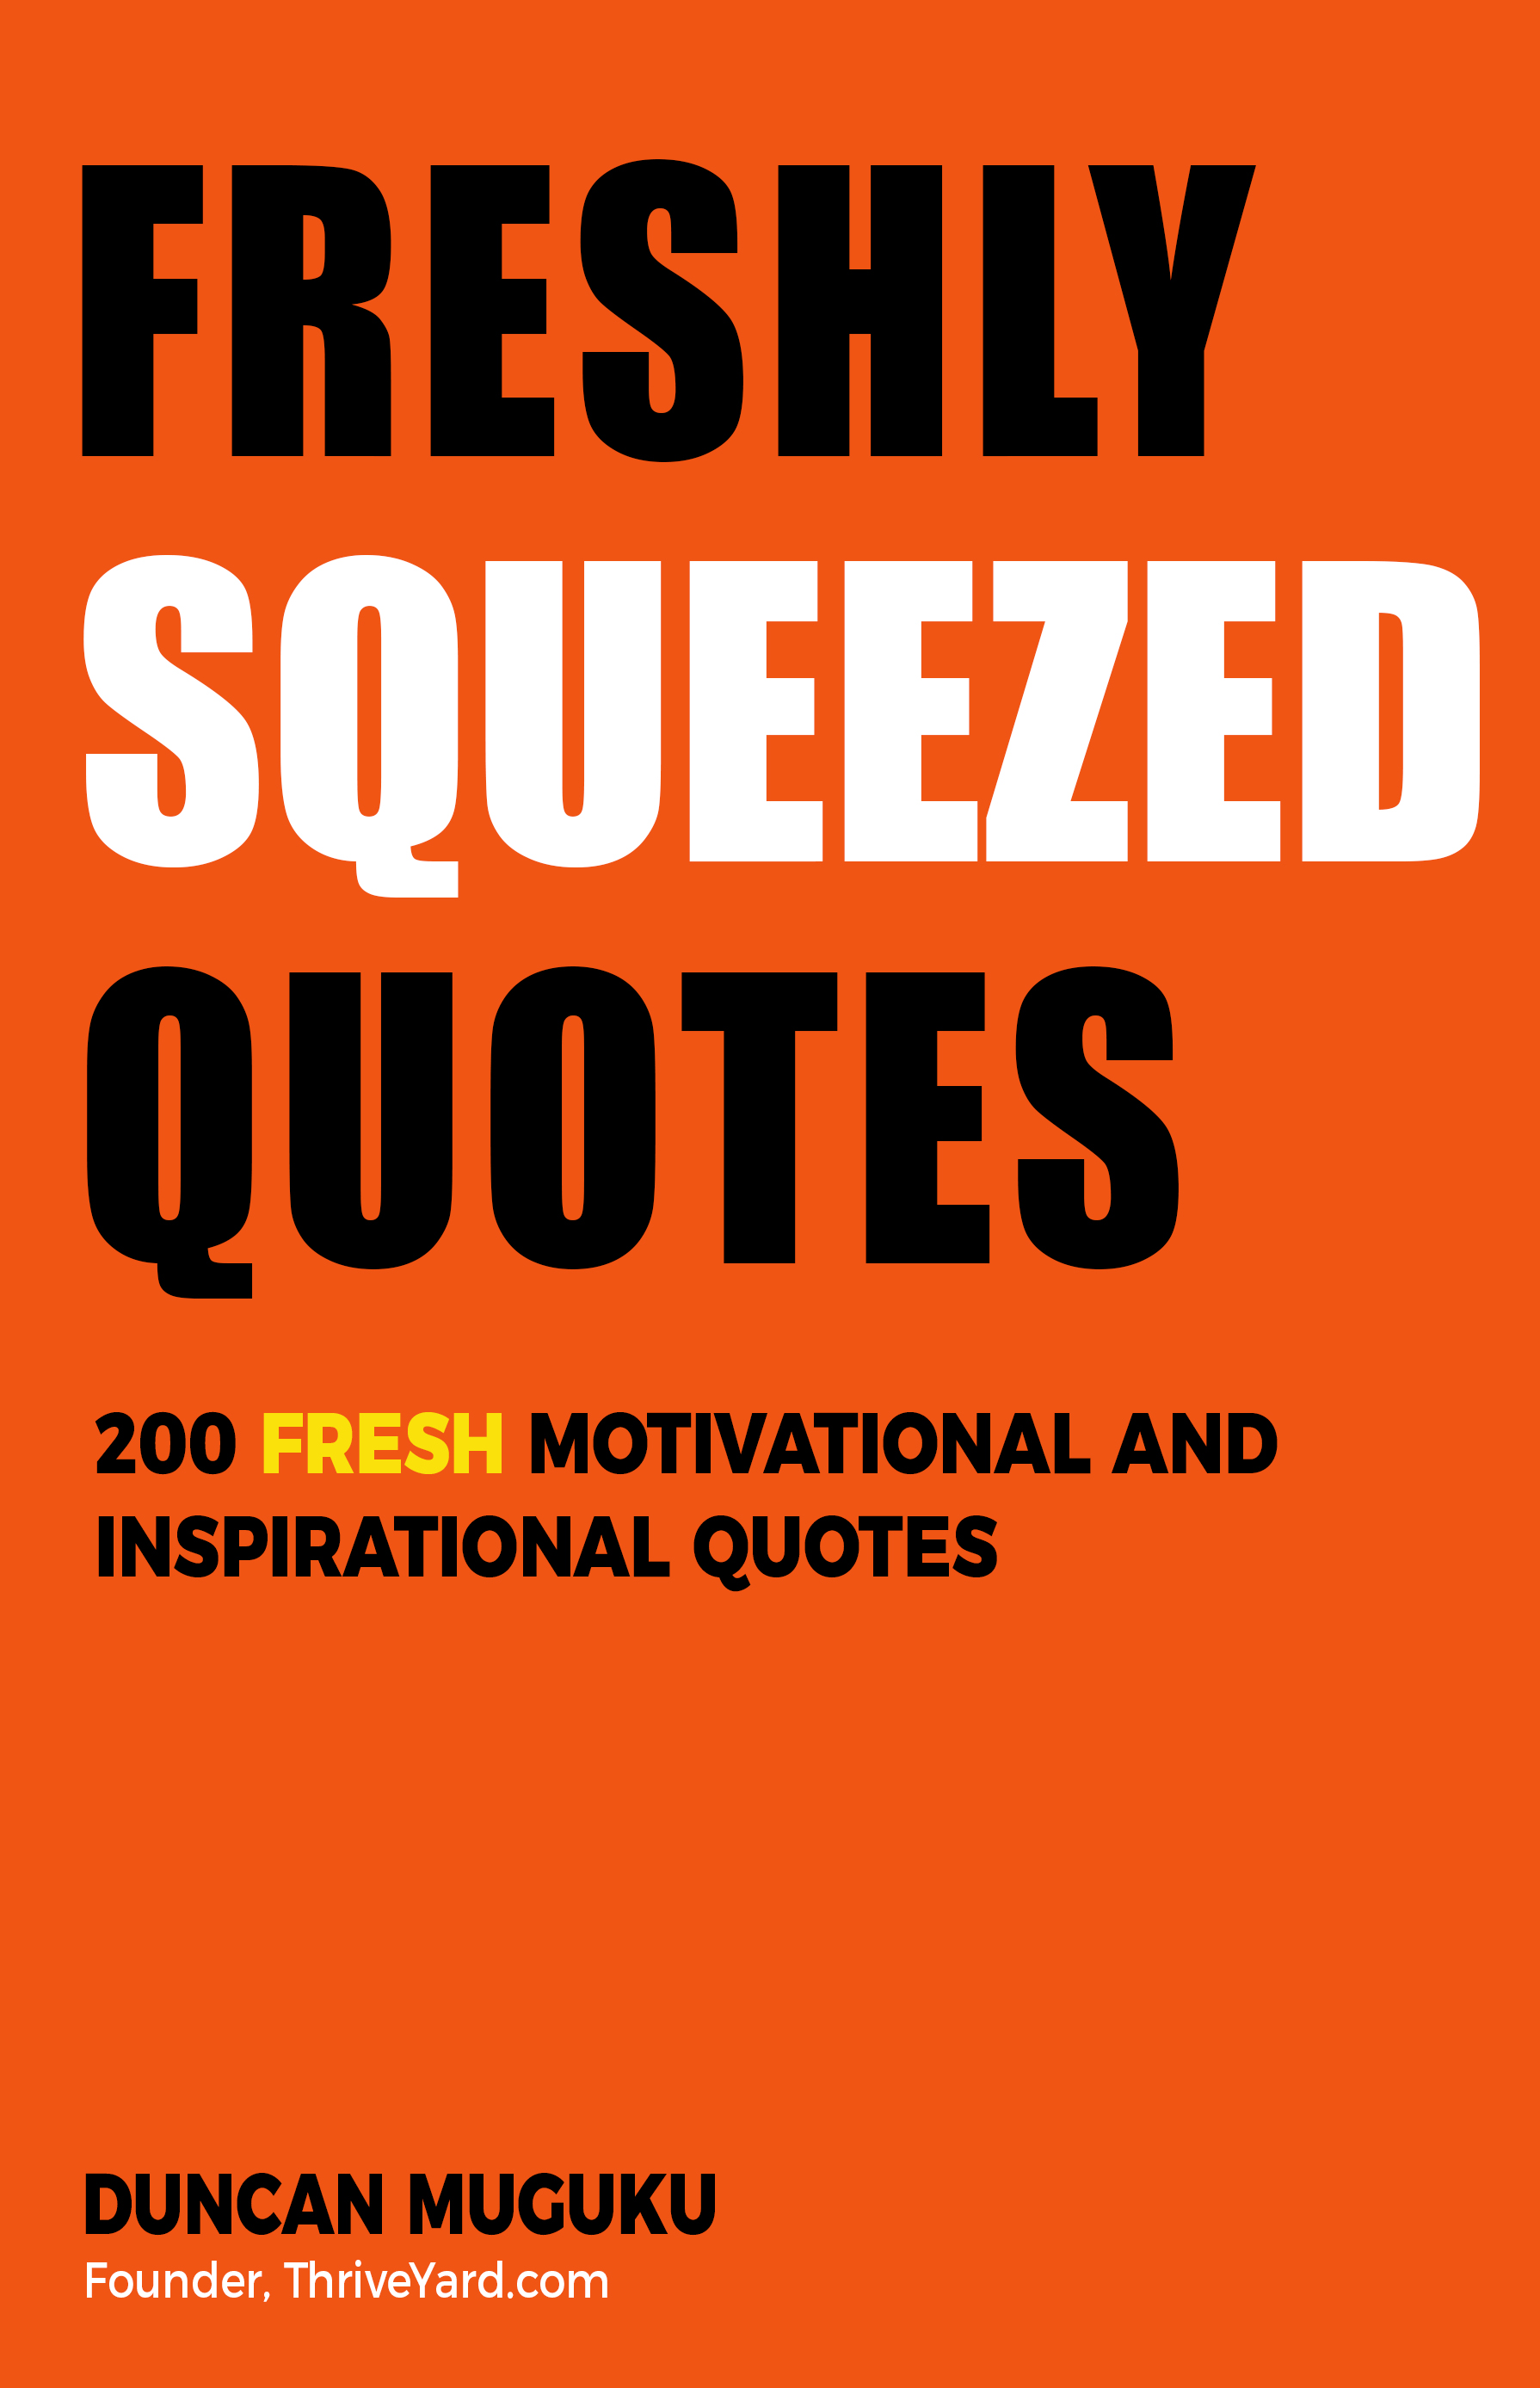 Freshly Squeezed Quotes: 200 Fresh Motivational and Inspirational Quotes- By Duncan Muguku, Founder, ThriveYard